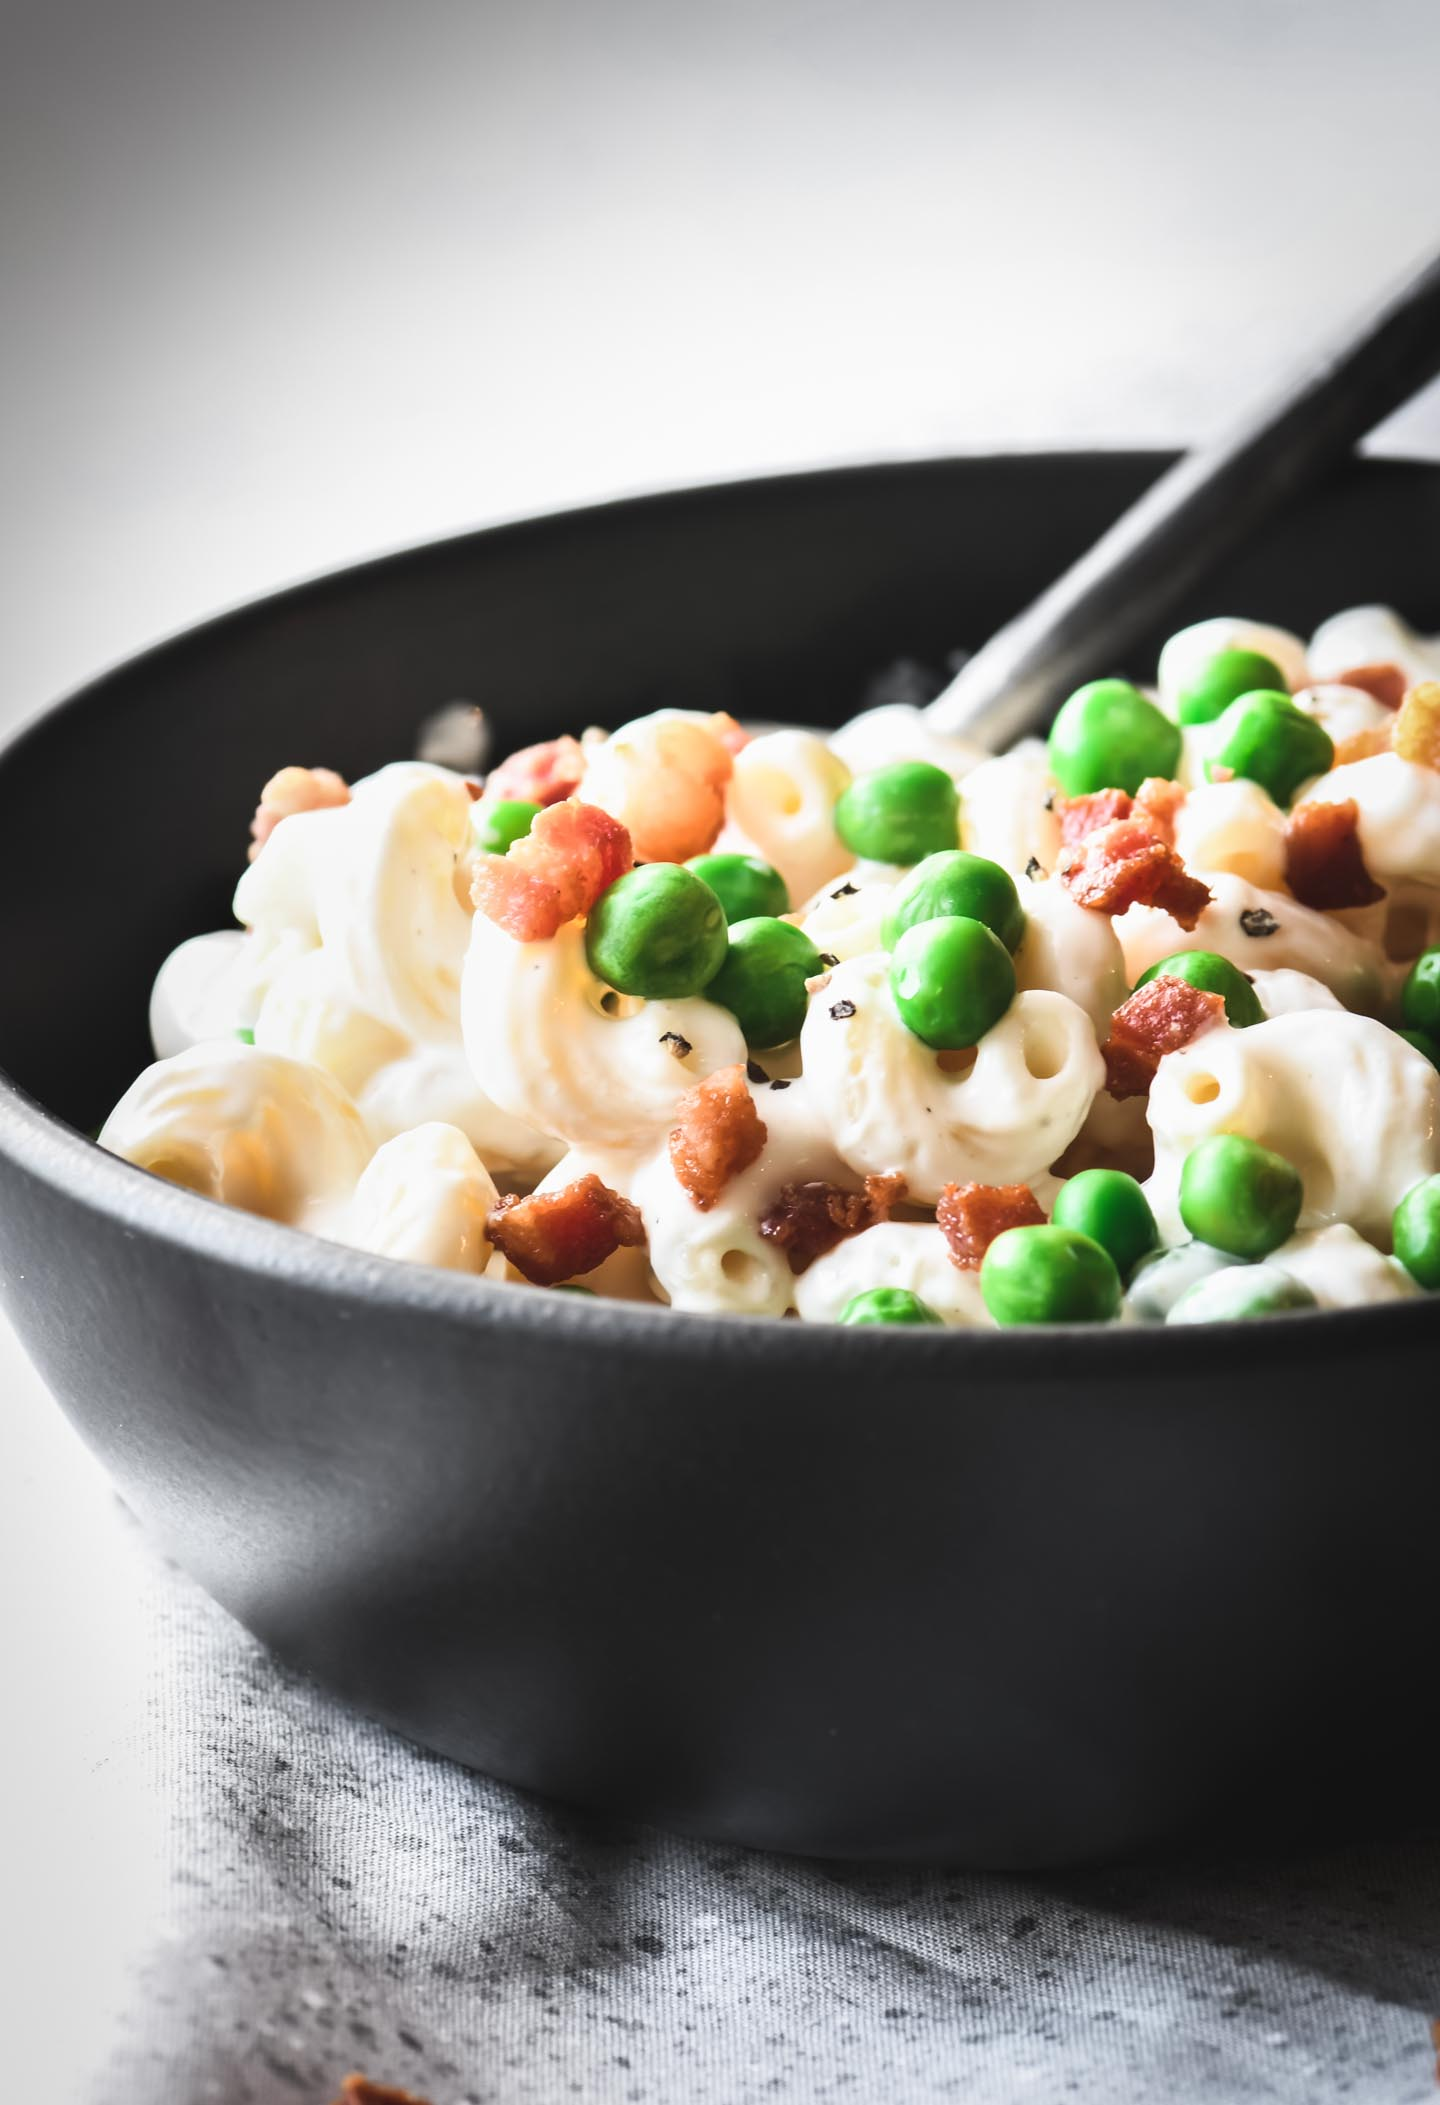 Greek Yogurt Mac & Cheese | Fusilli pasta with creamy cheese sauce, peas and crispy pancetta